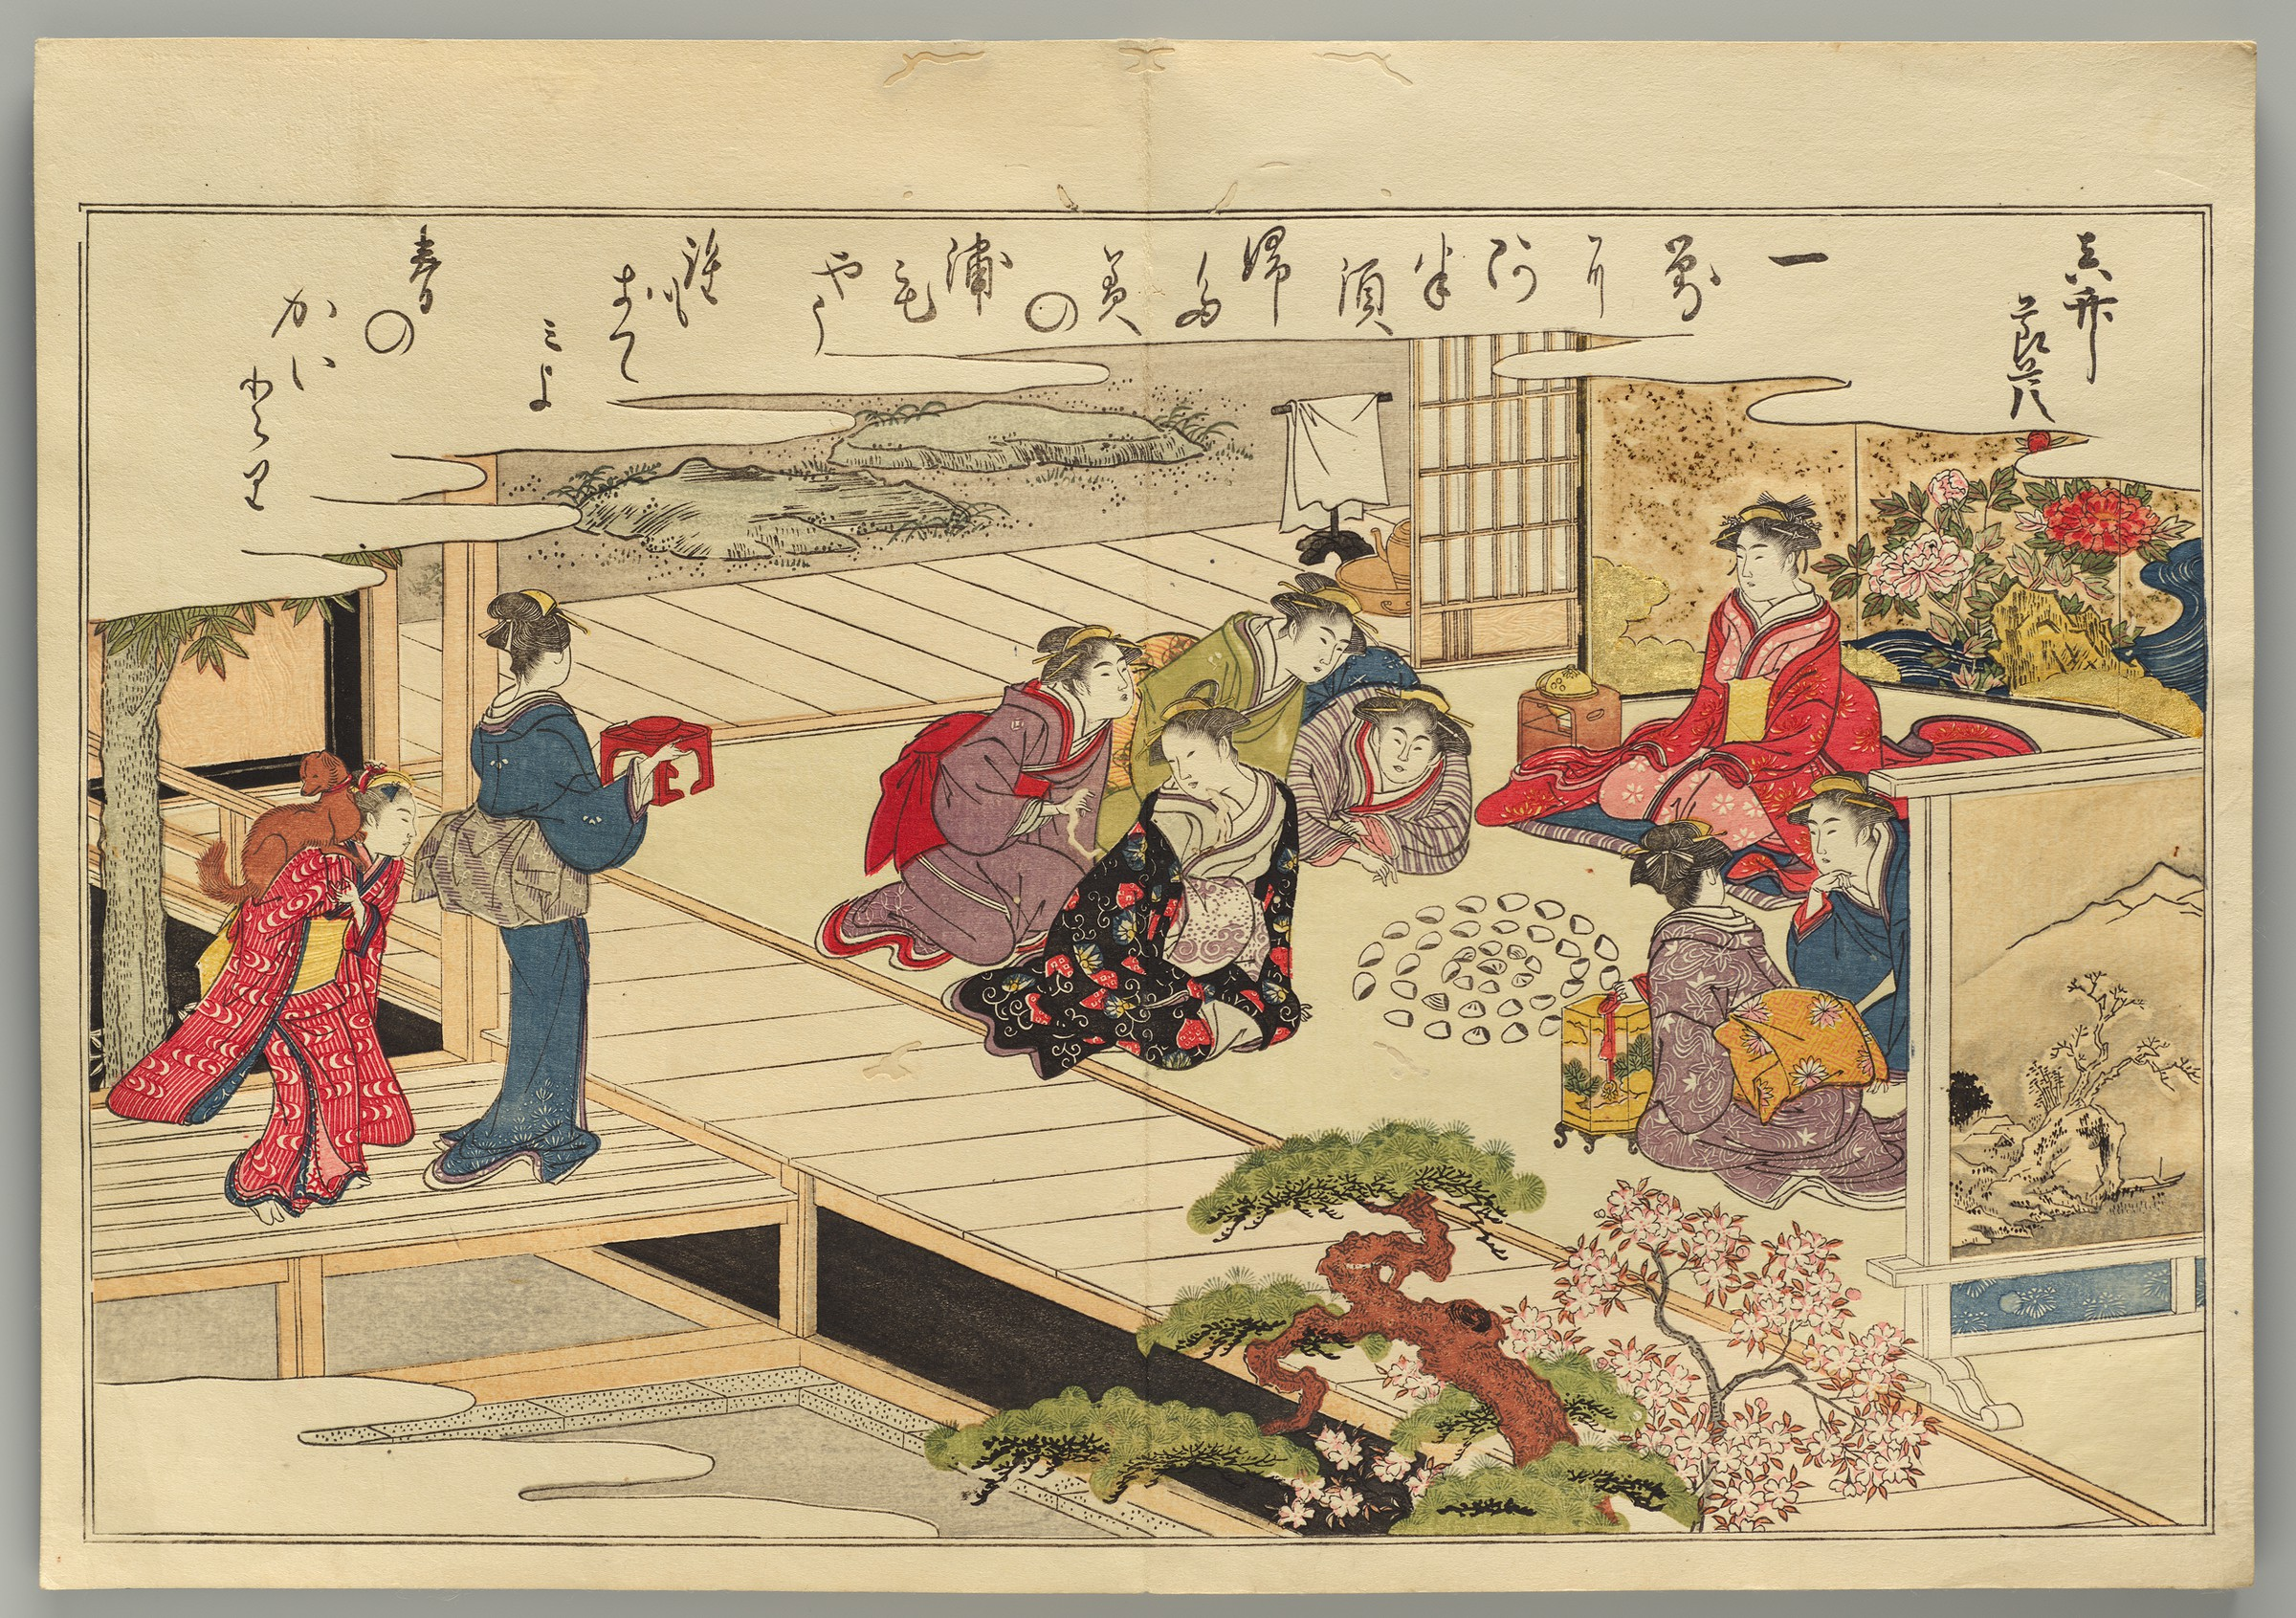 Page from the woodblock-printed book by Kitagawa Utamaro depicting individuals looking at seashells.